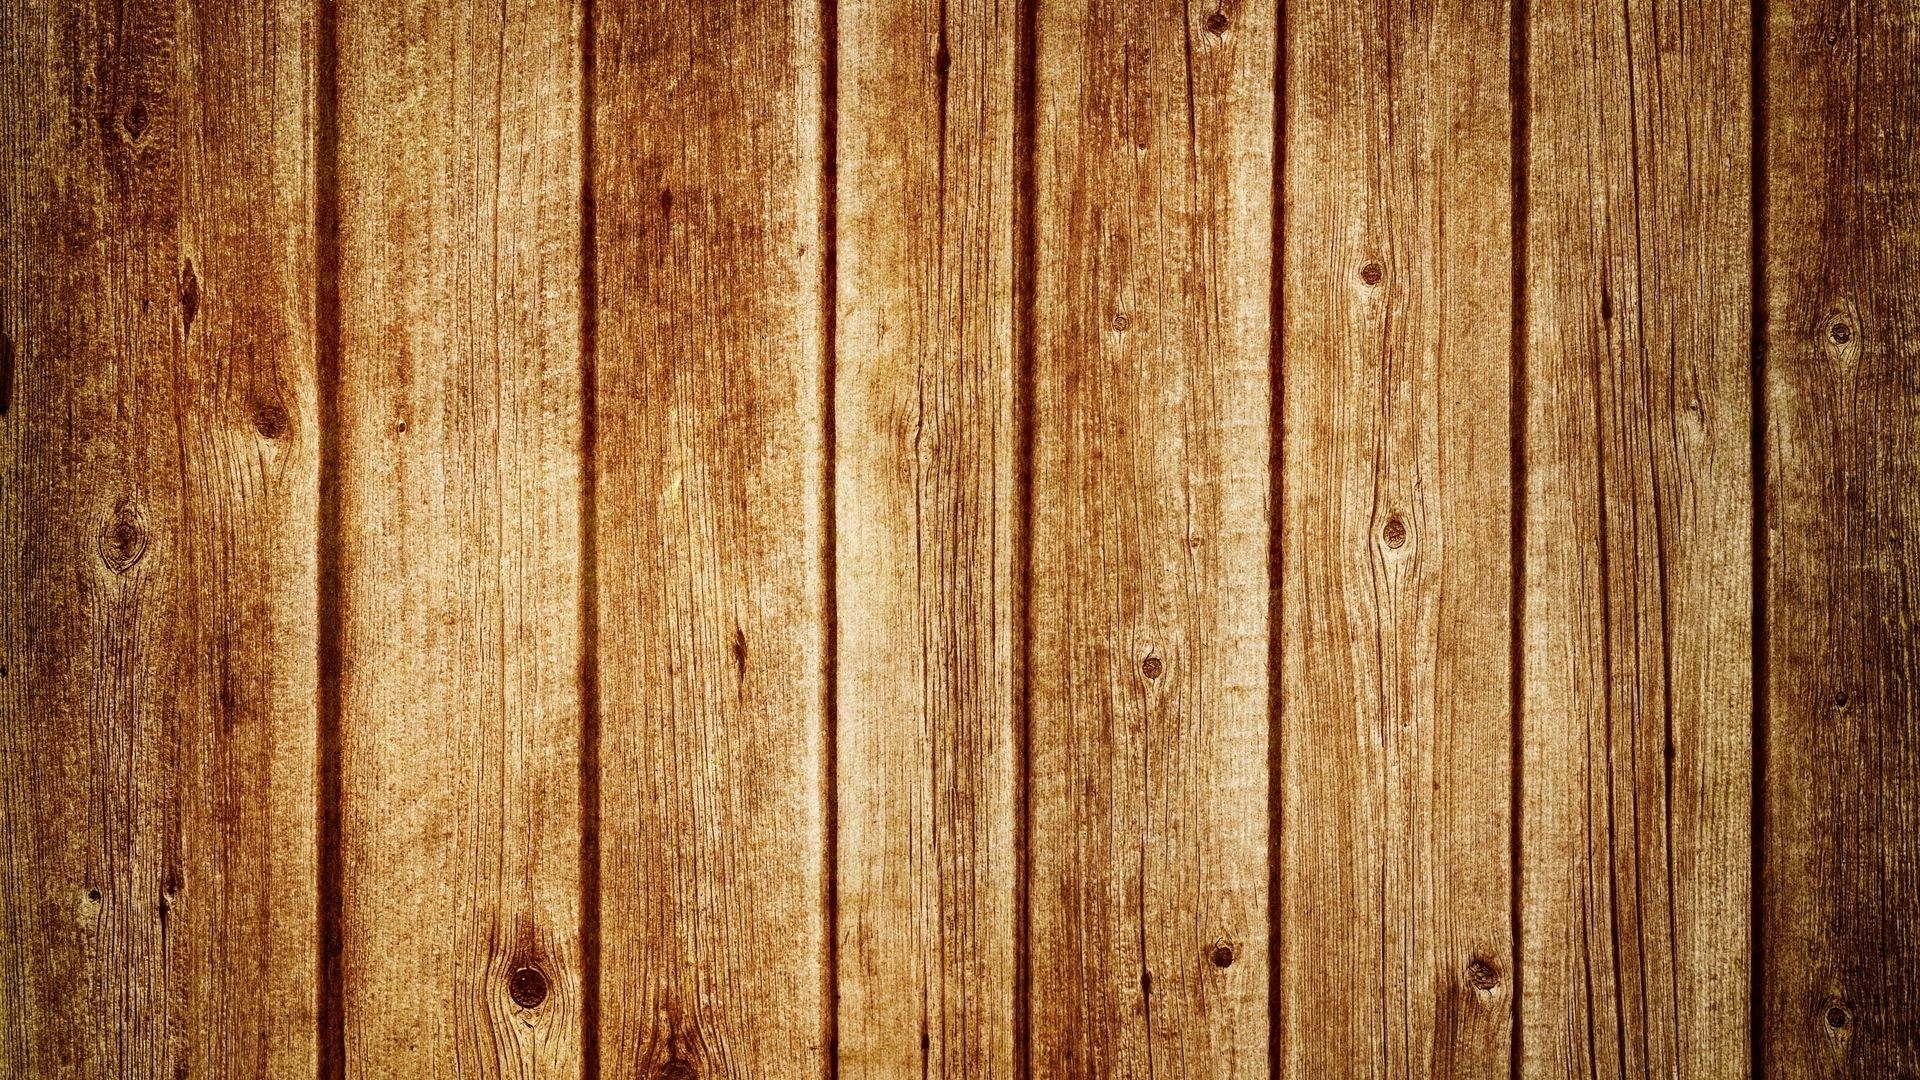 Rustic Wood Wallpapers Wide On Wallpaper 1080p Hd Wood Wallpaper Wood Background Free Rustic Wood Wallpaper